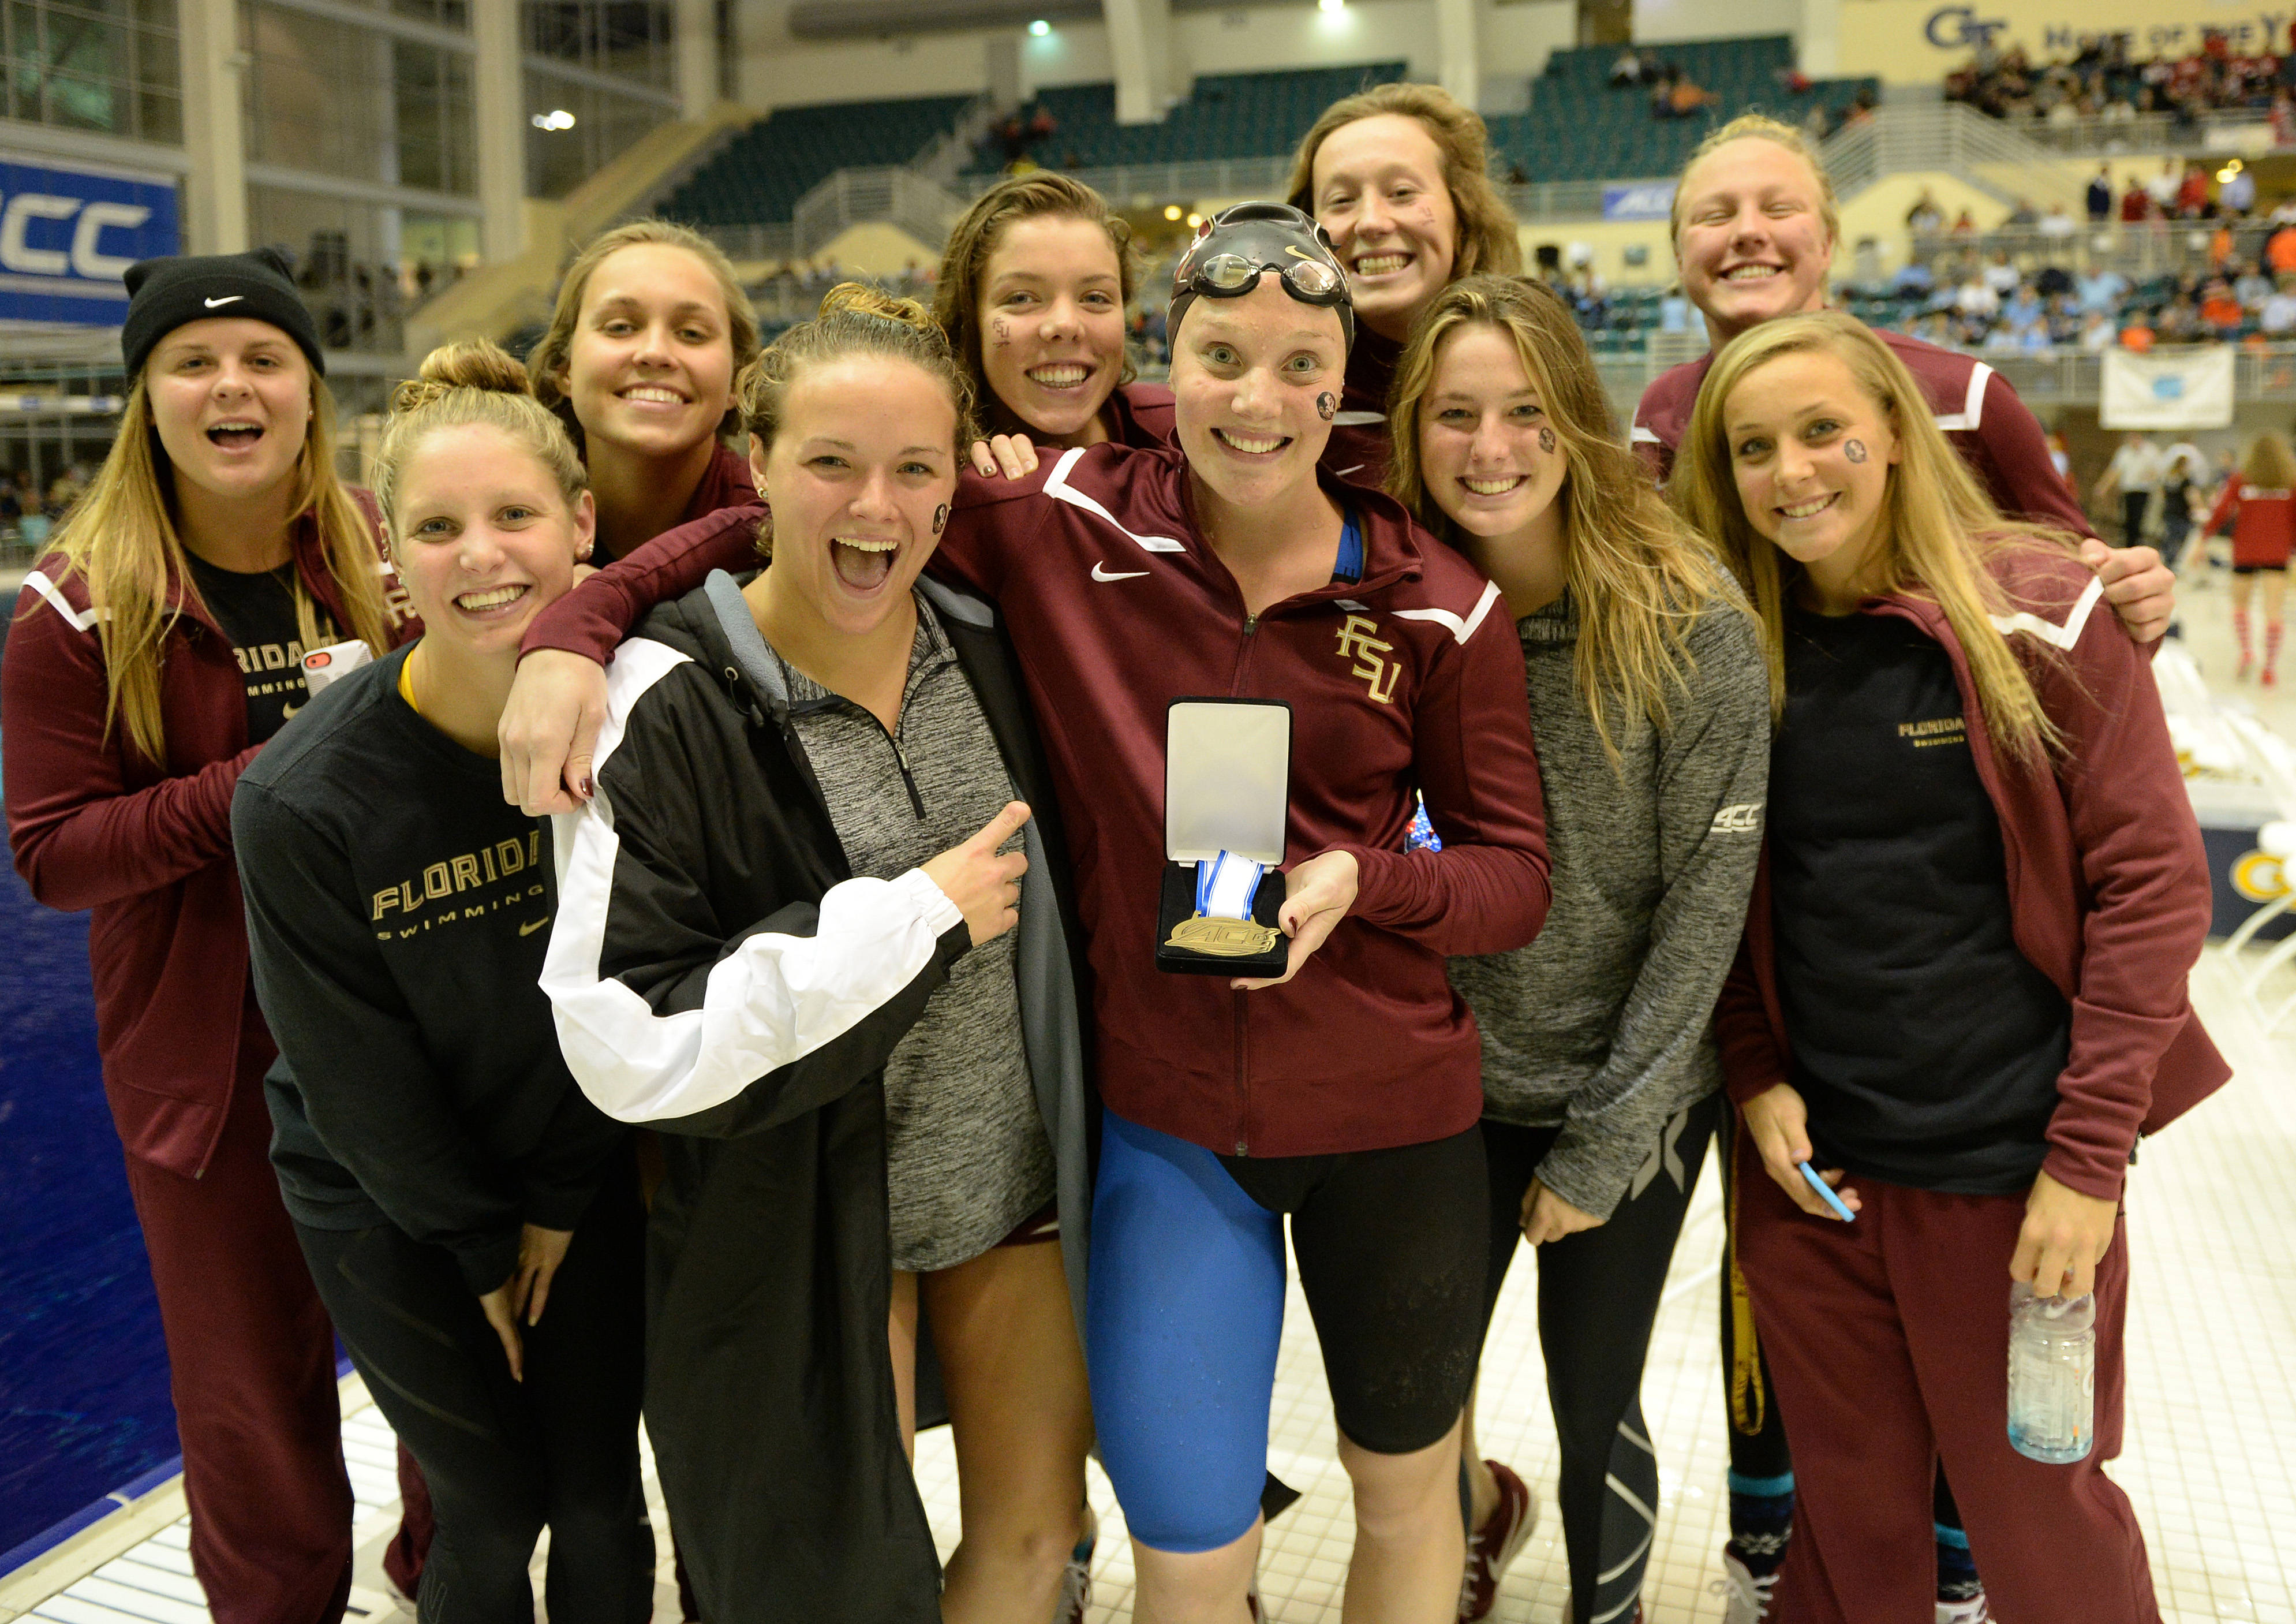 Kaitlyn Dressel smiles with her team after the 50 free - Mitch White